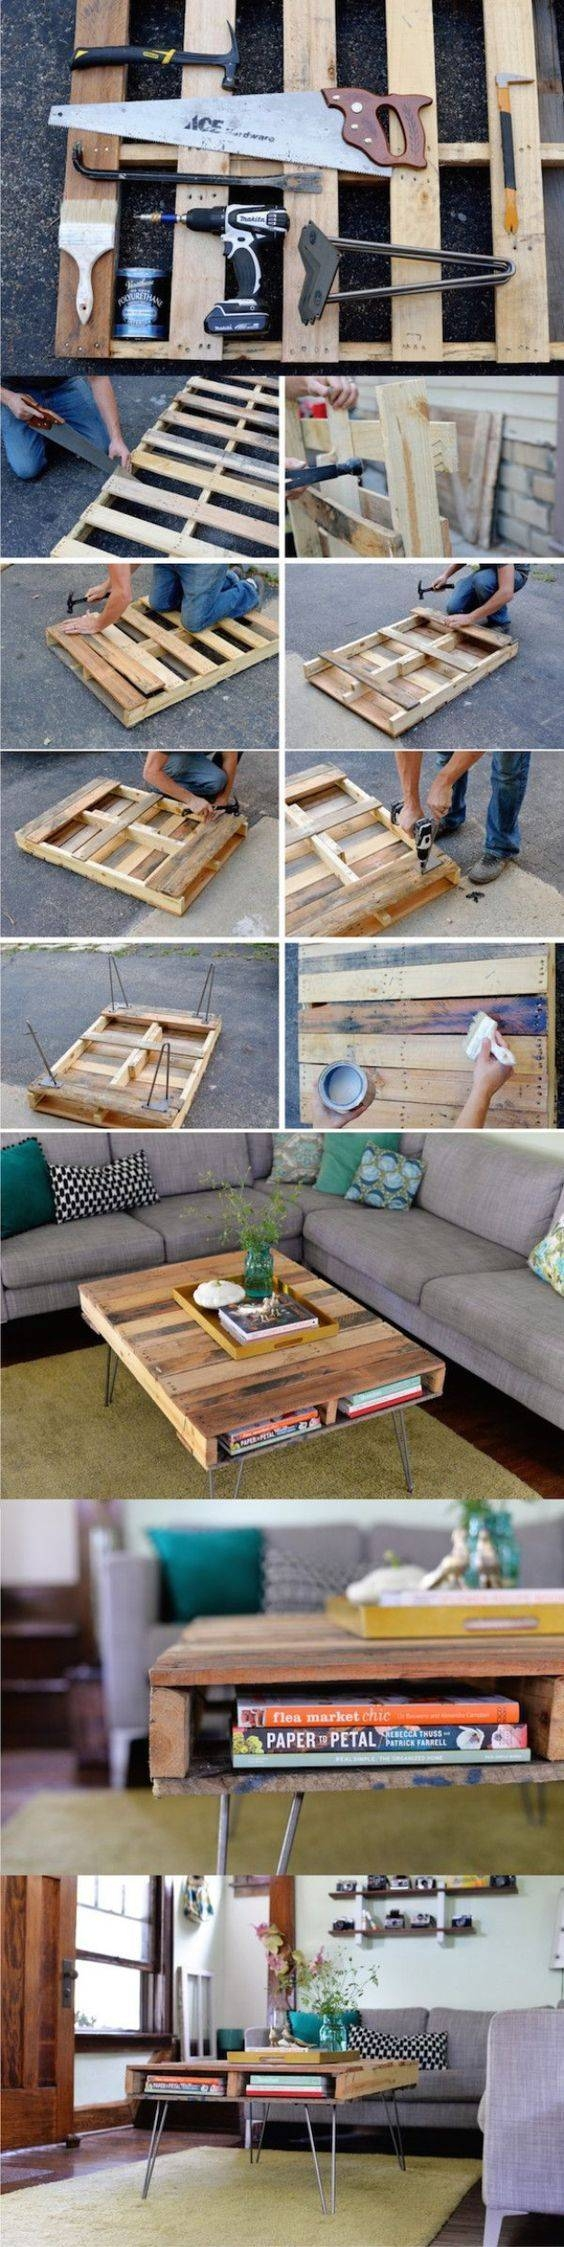 Best 20+ Cheap Coffee Tables Ideas On Pinterest | Cheap Coffee throughout Cheap Coffee Tables (Image 1 of 30)